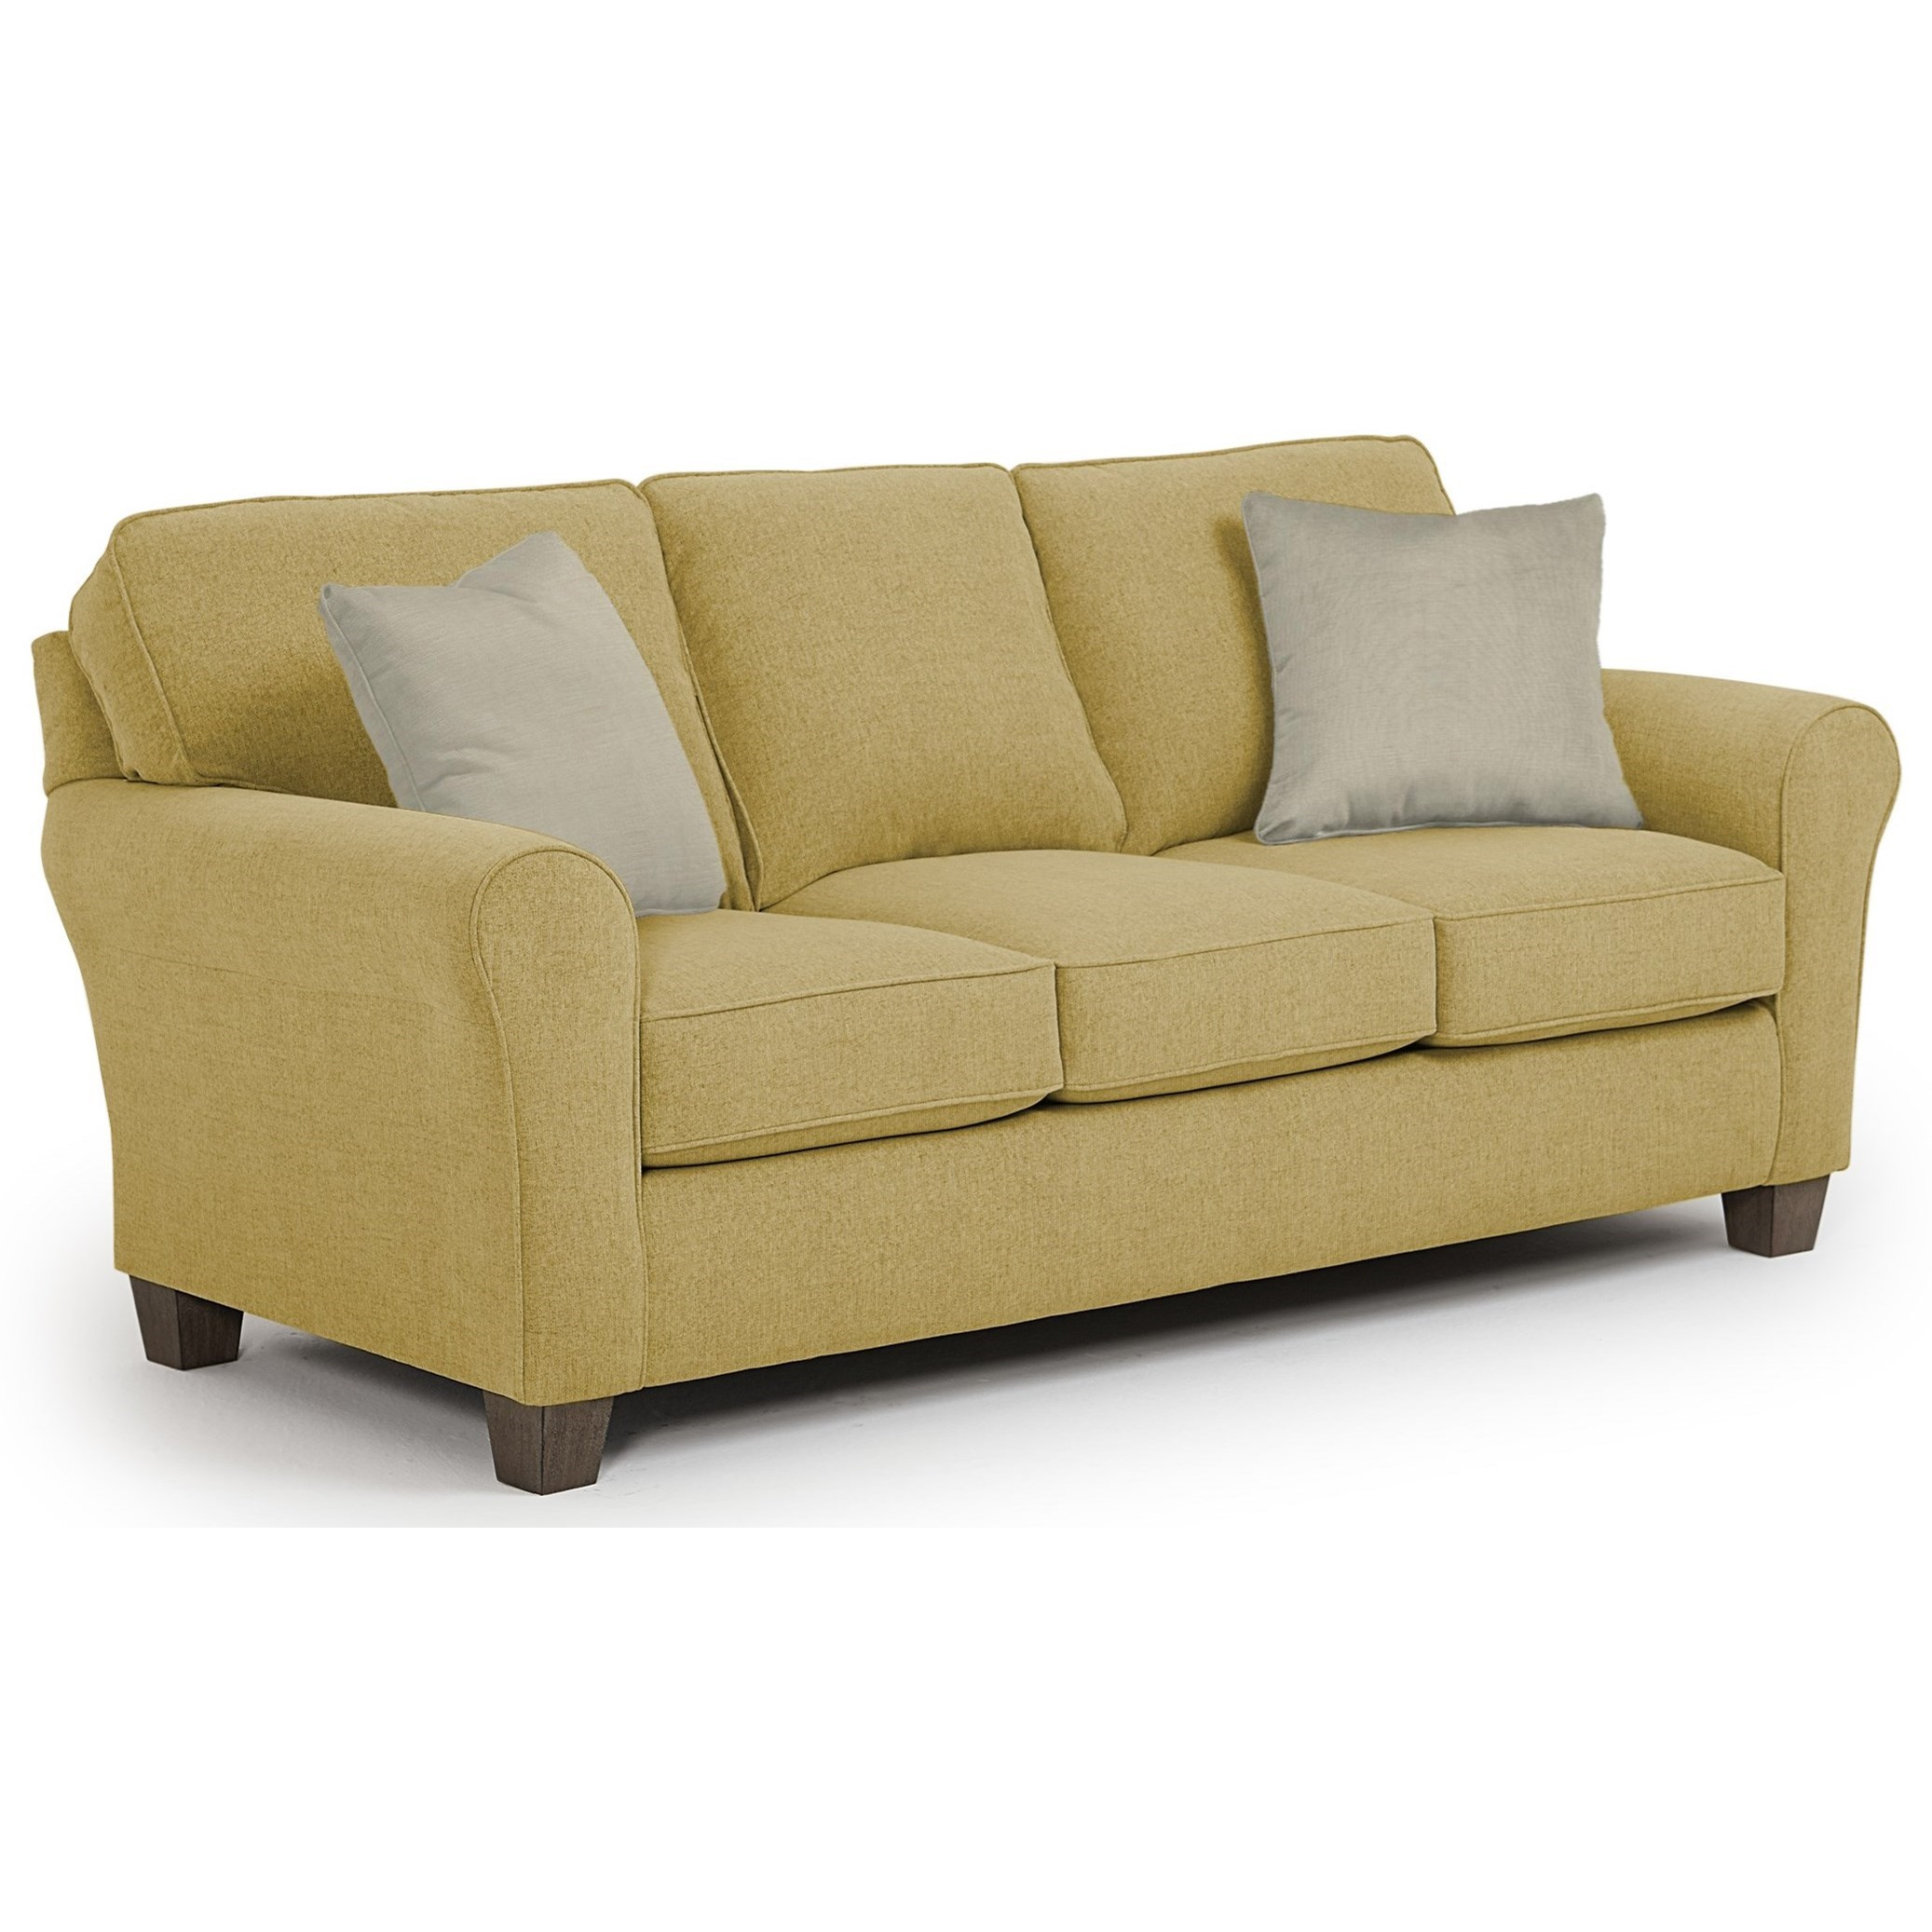 Annabel  Custom 3 Over 3 Sofa by Best Home Furnishings at Lapeer Furniture & Mattress Center